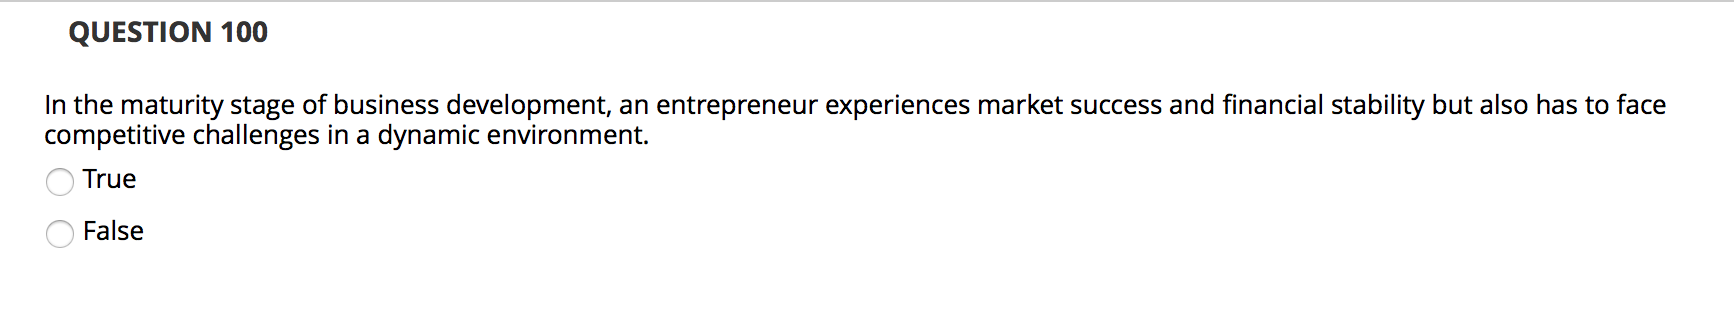 QUESTION 100 In the maturity stage of business development, an entrepreneur experiences market success and financial stabilit